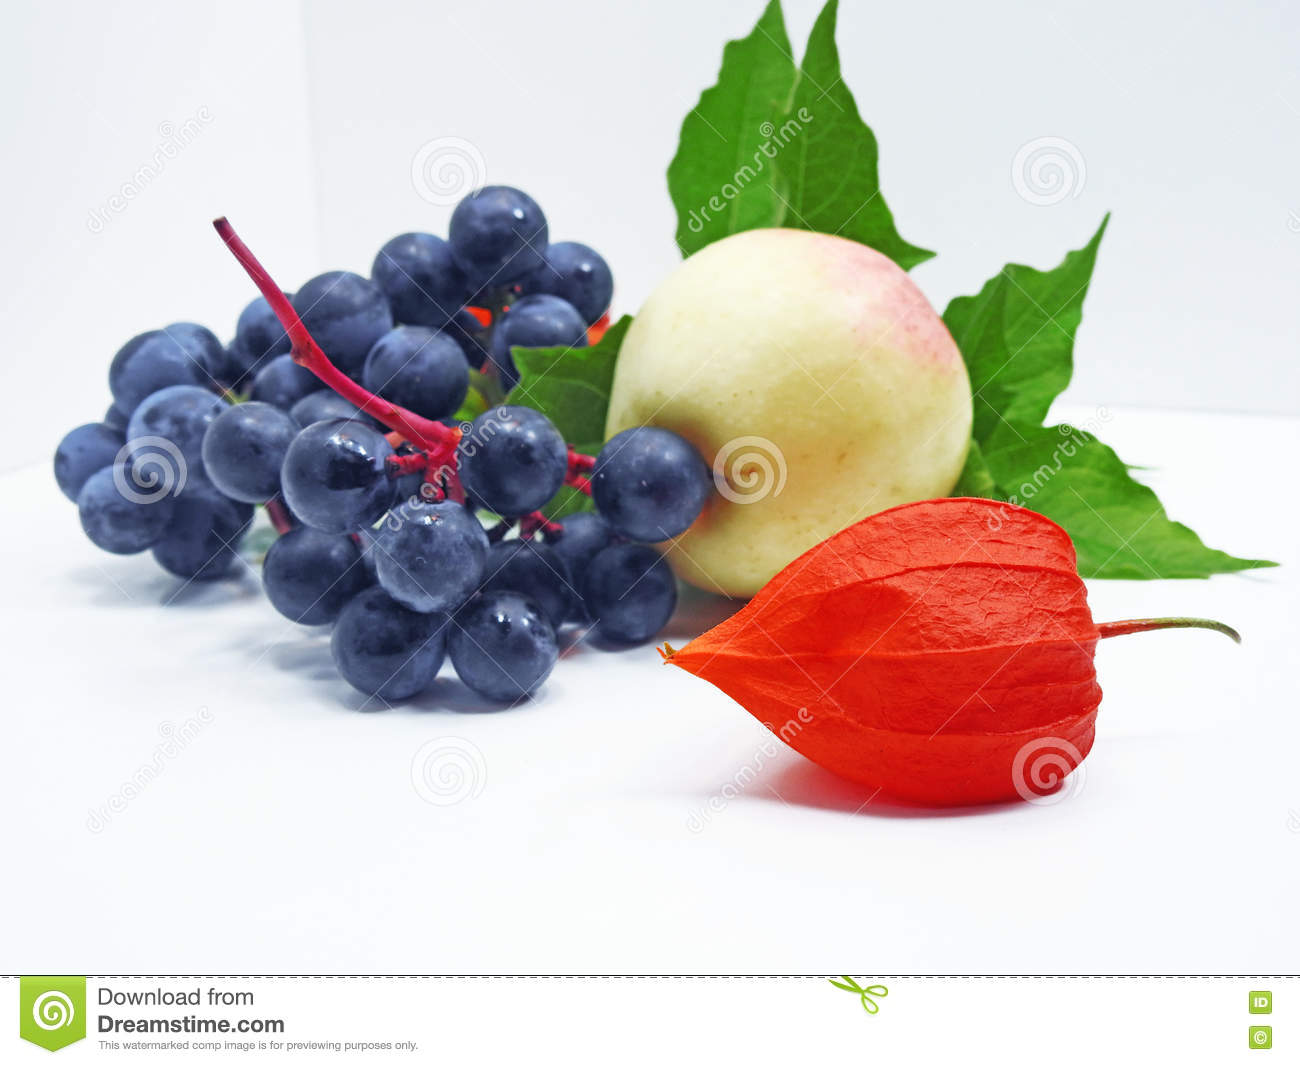 apple, concord black grapes and physalis flower stock photo - image